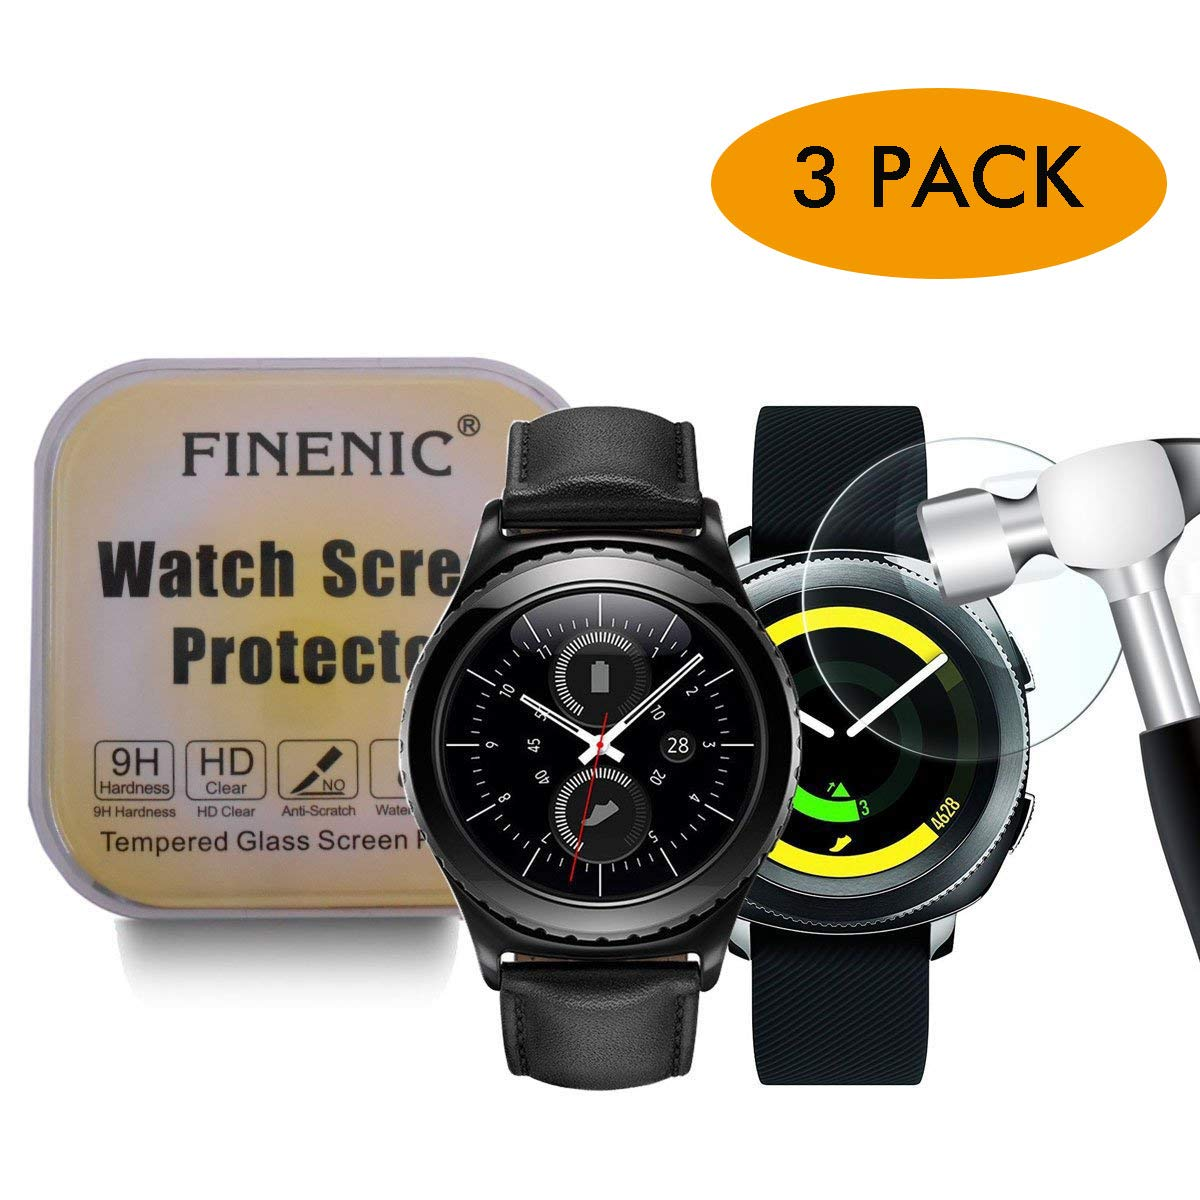 FINENIC 【3 Pack】 Screen Protector Compatible for Samsung Gear S2 smartwatch,Tempered Glass Screen Protector,HD Clear,Bubble Free,Anti-Scratch for Gear ...